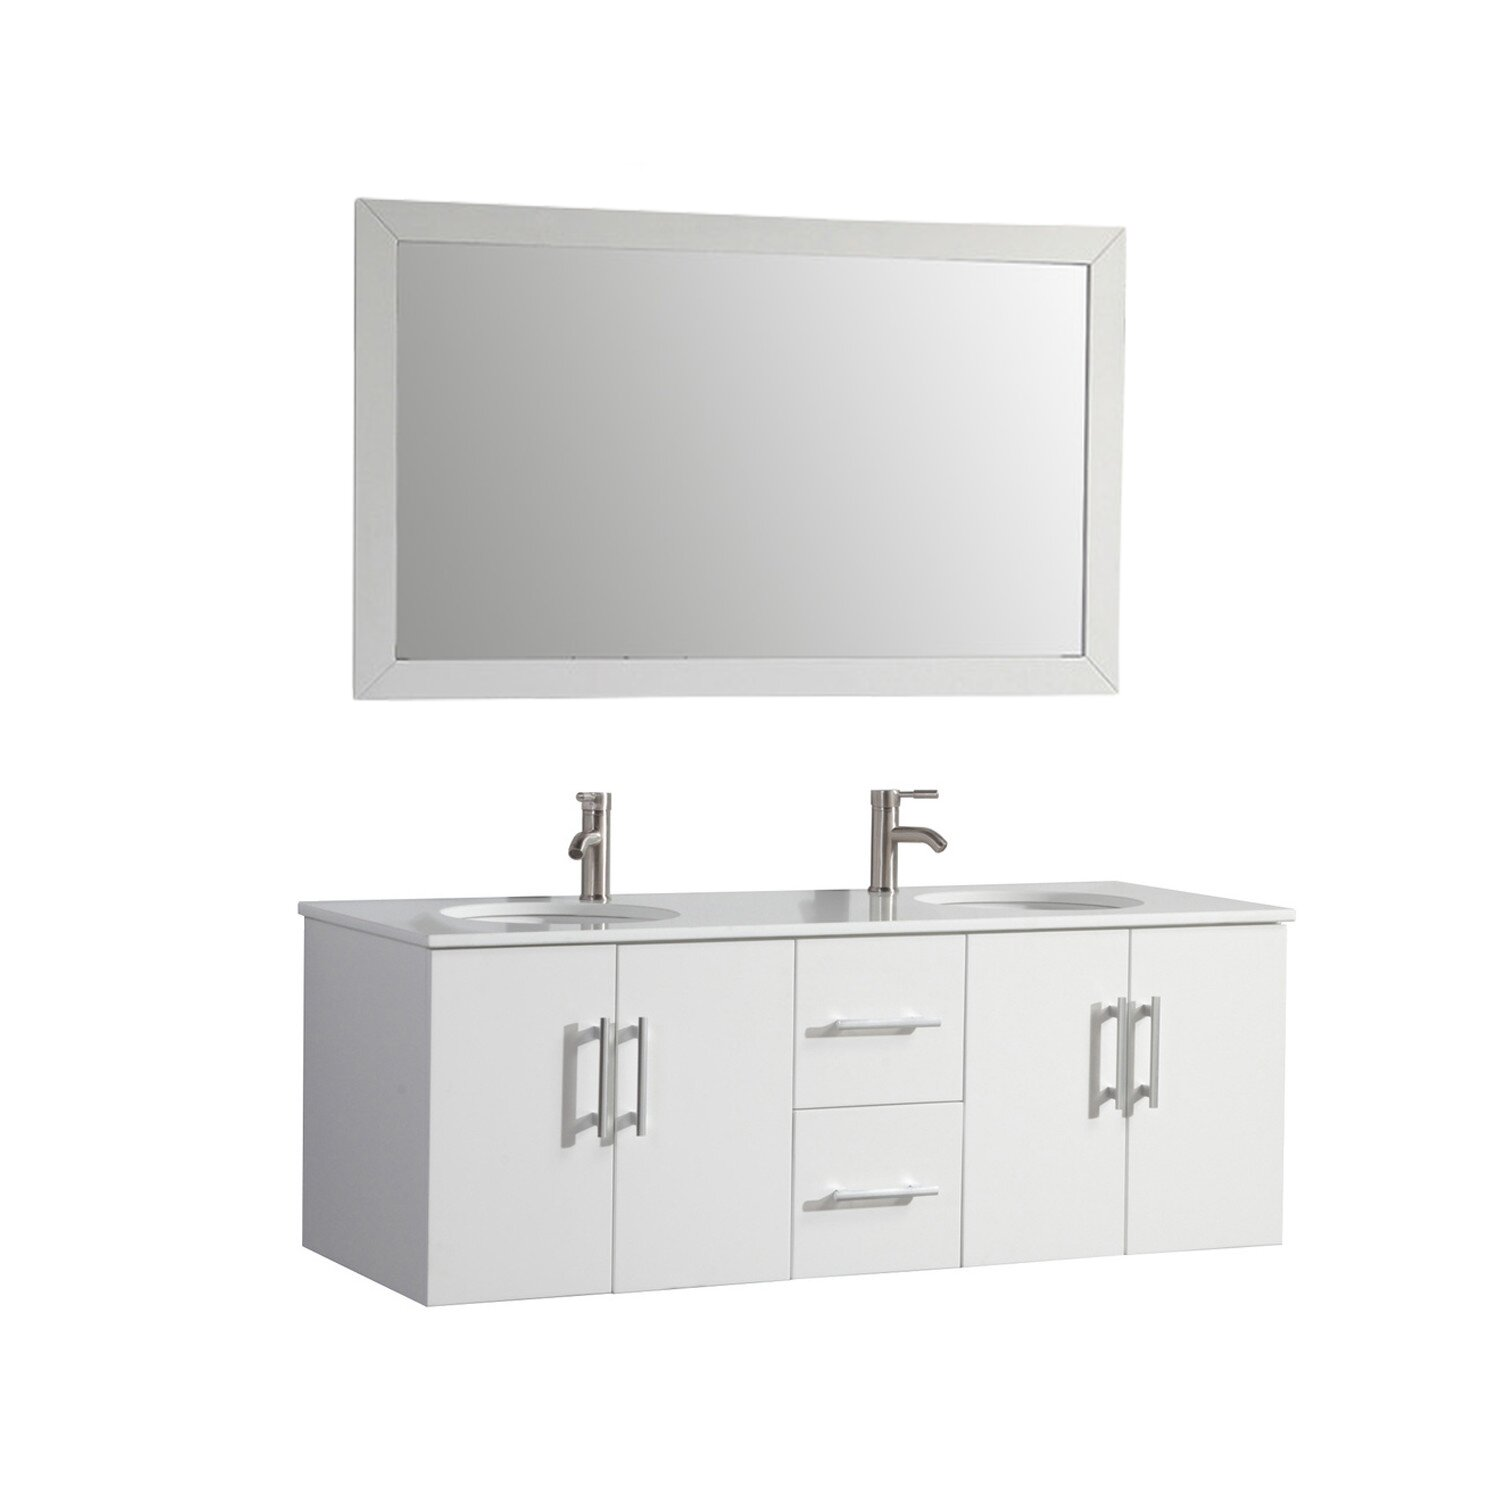 Mtdvanities nepal 60 double sink bathroom vanity set with for Kitchen sink in nepal